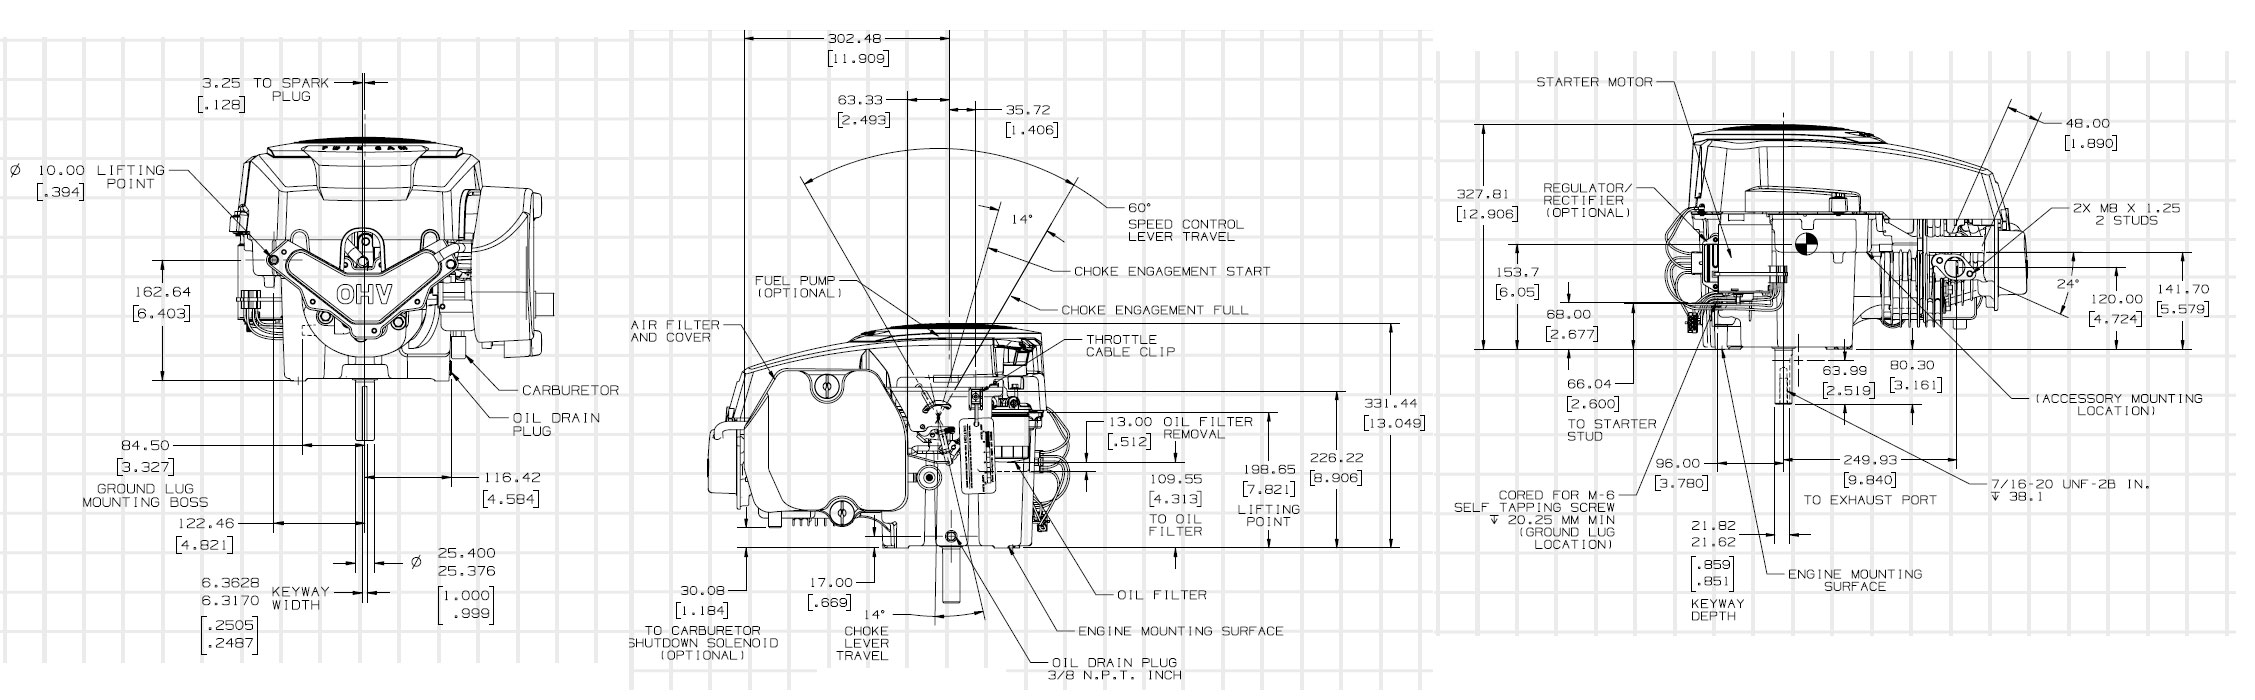 Kohler Courage Series Gasoline Engine Sv480 15 5 Diagram